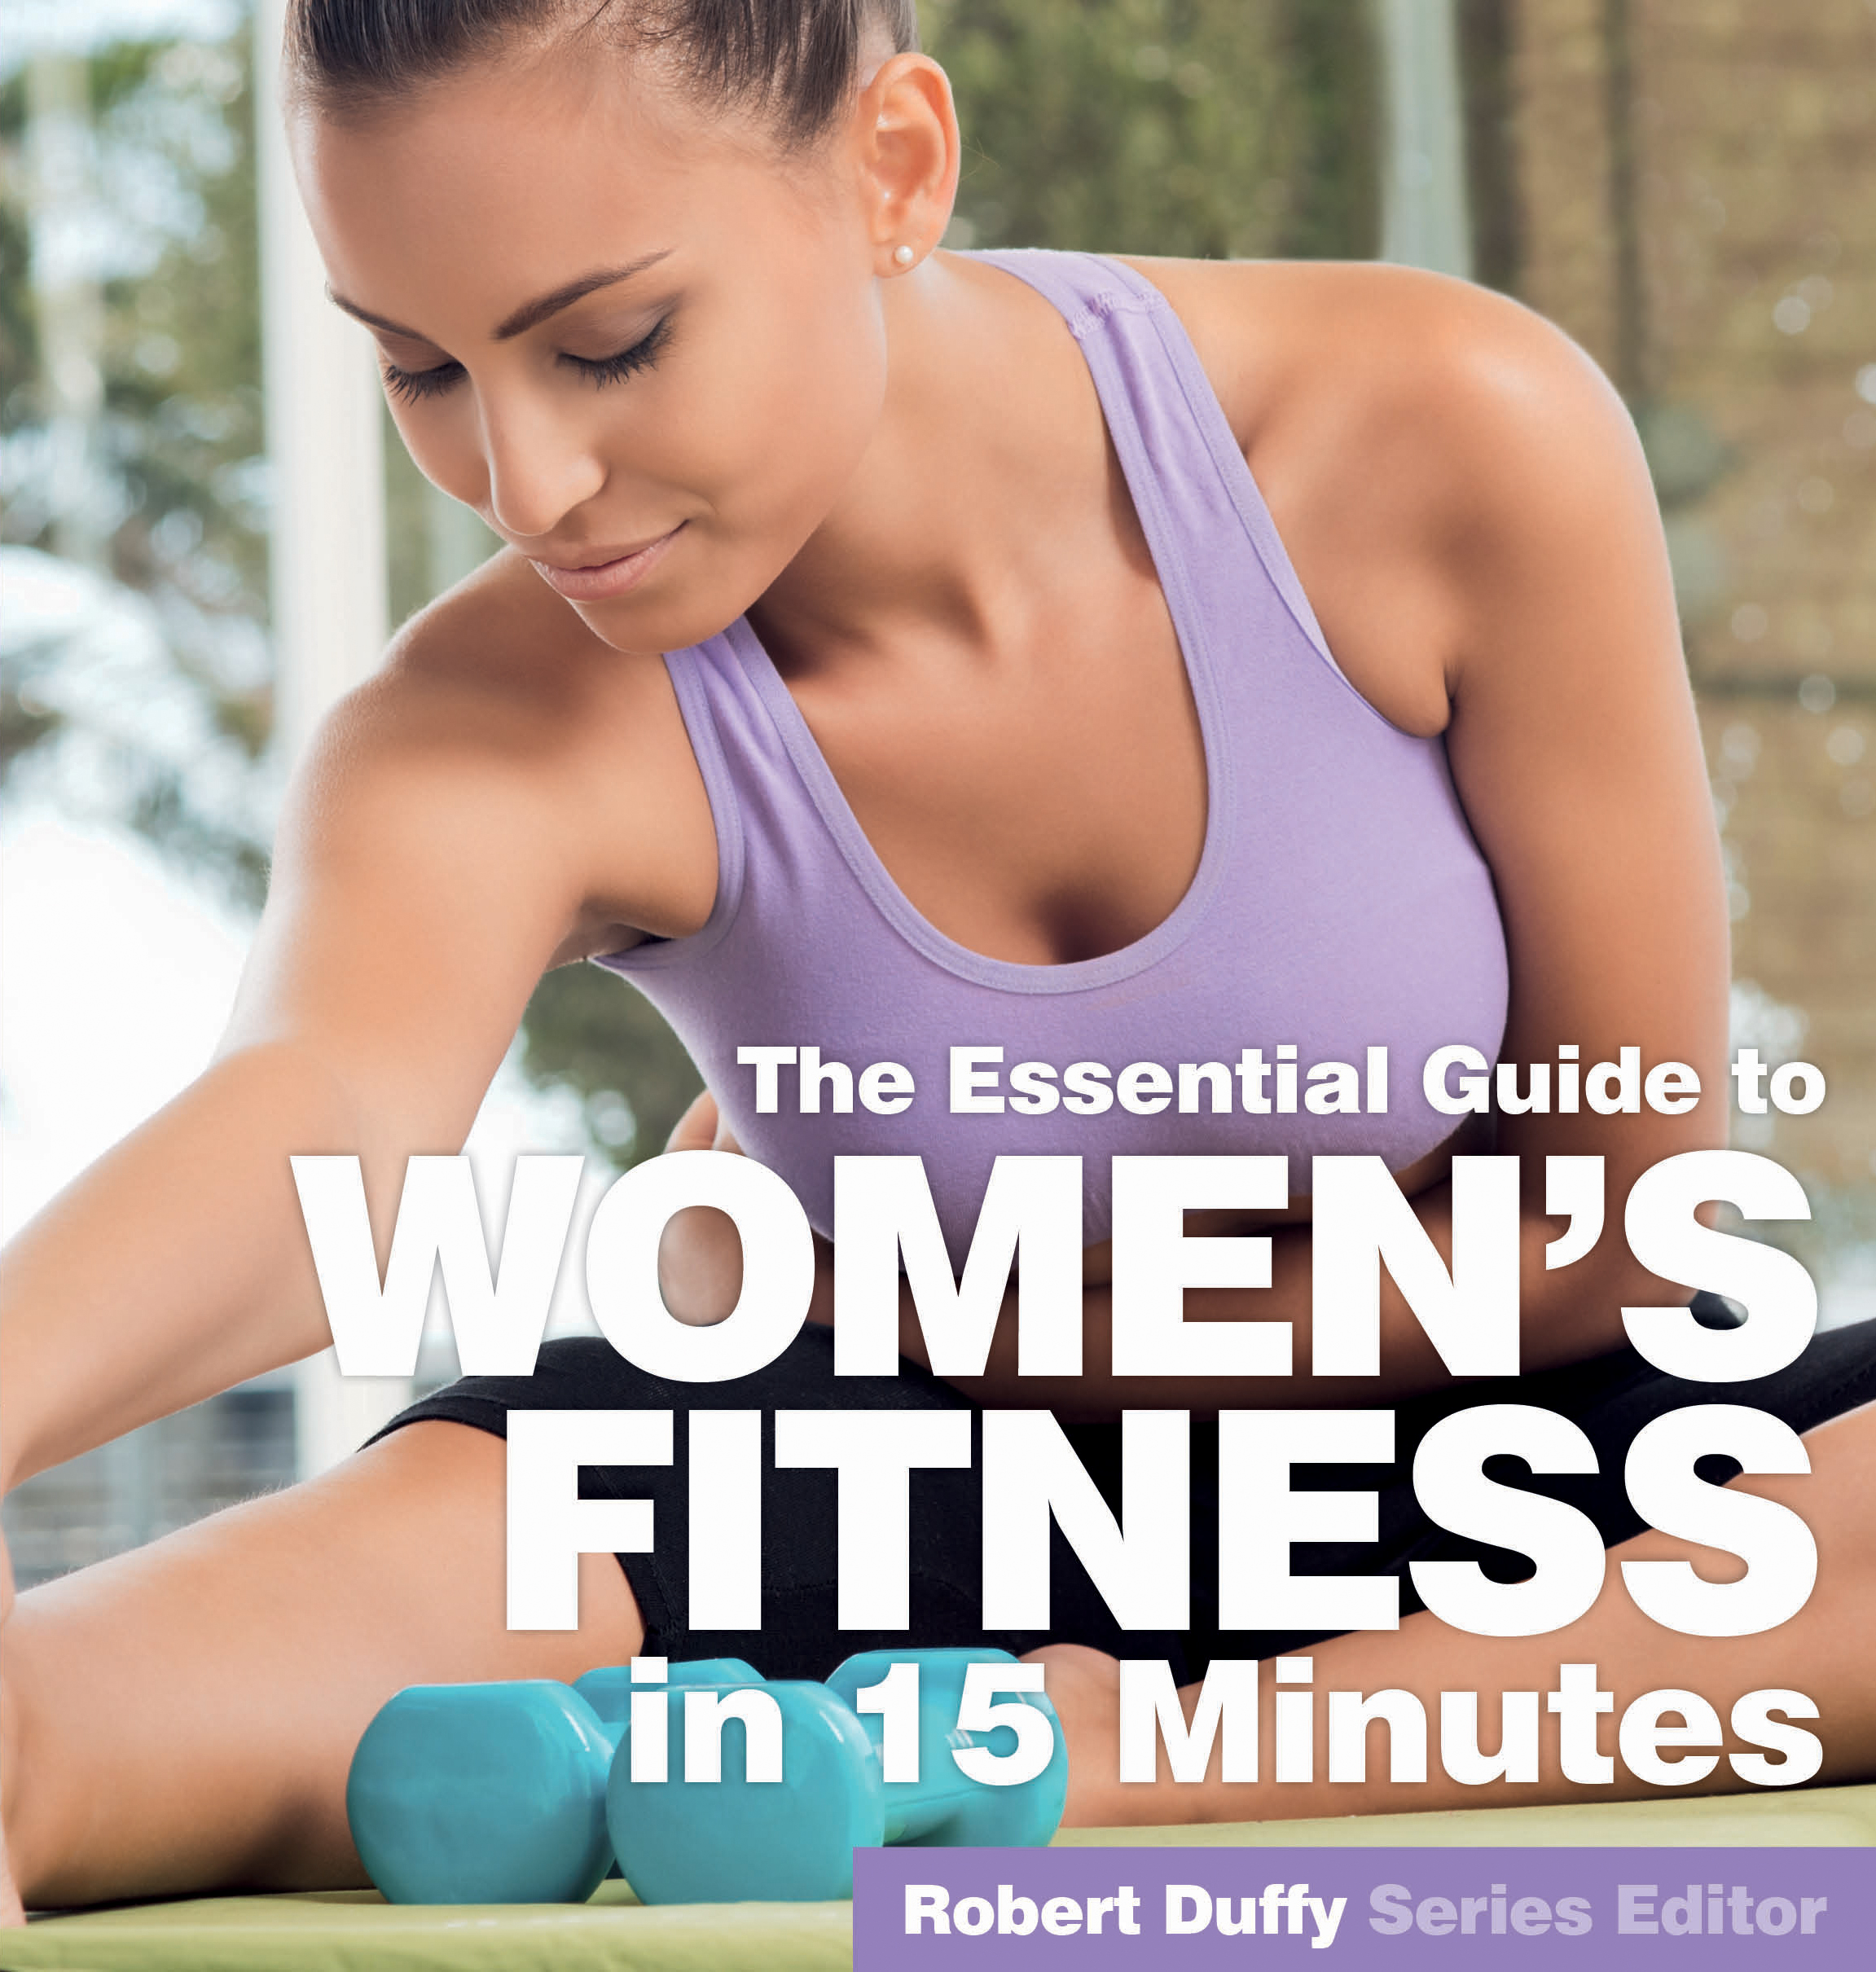 The Essential Guide To Women's Fitness In 15 Minutes